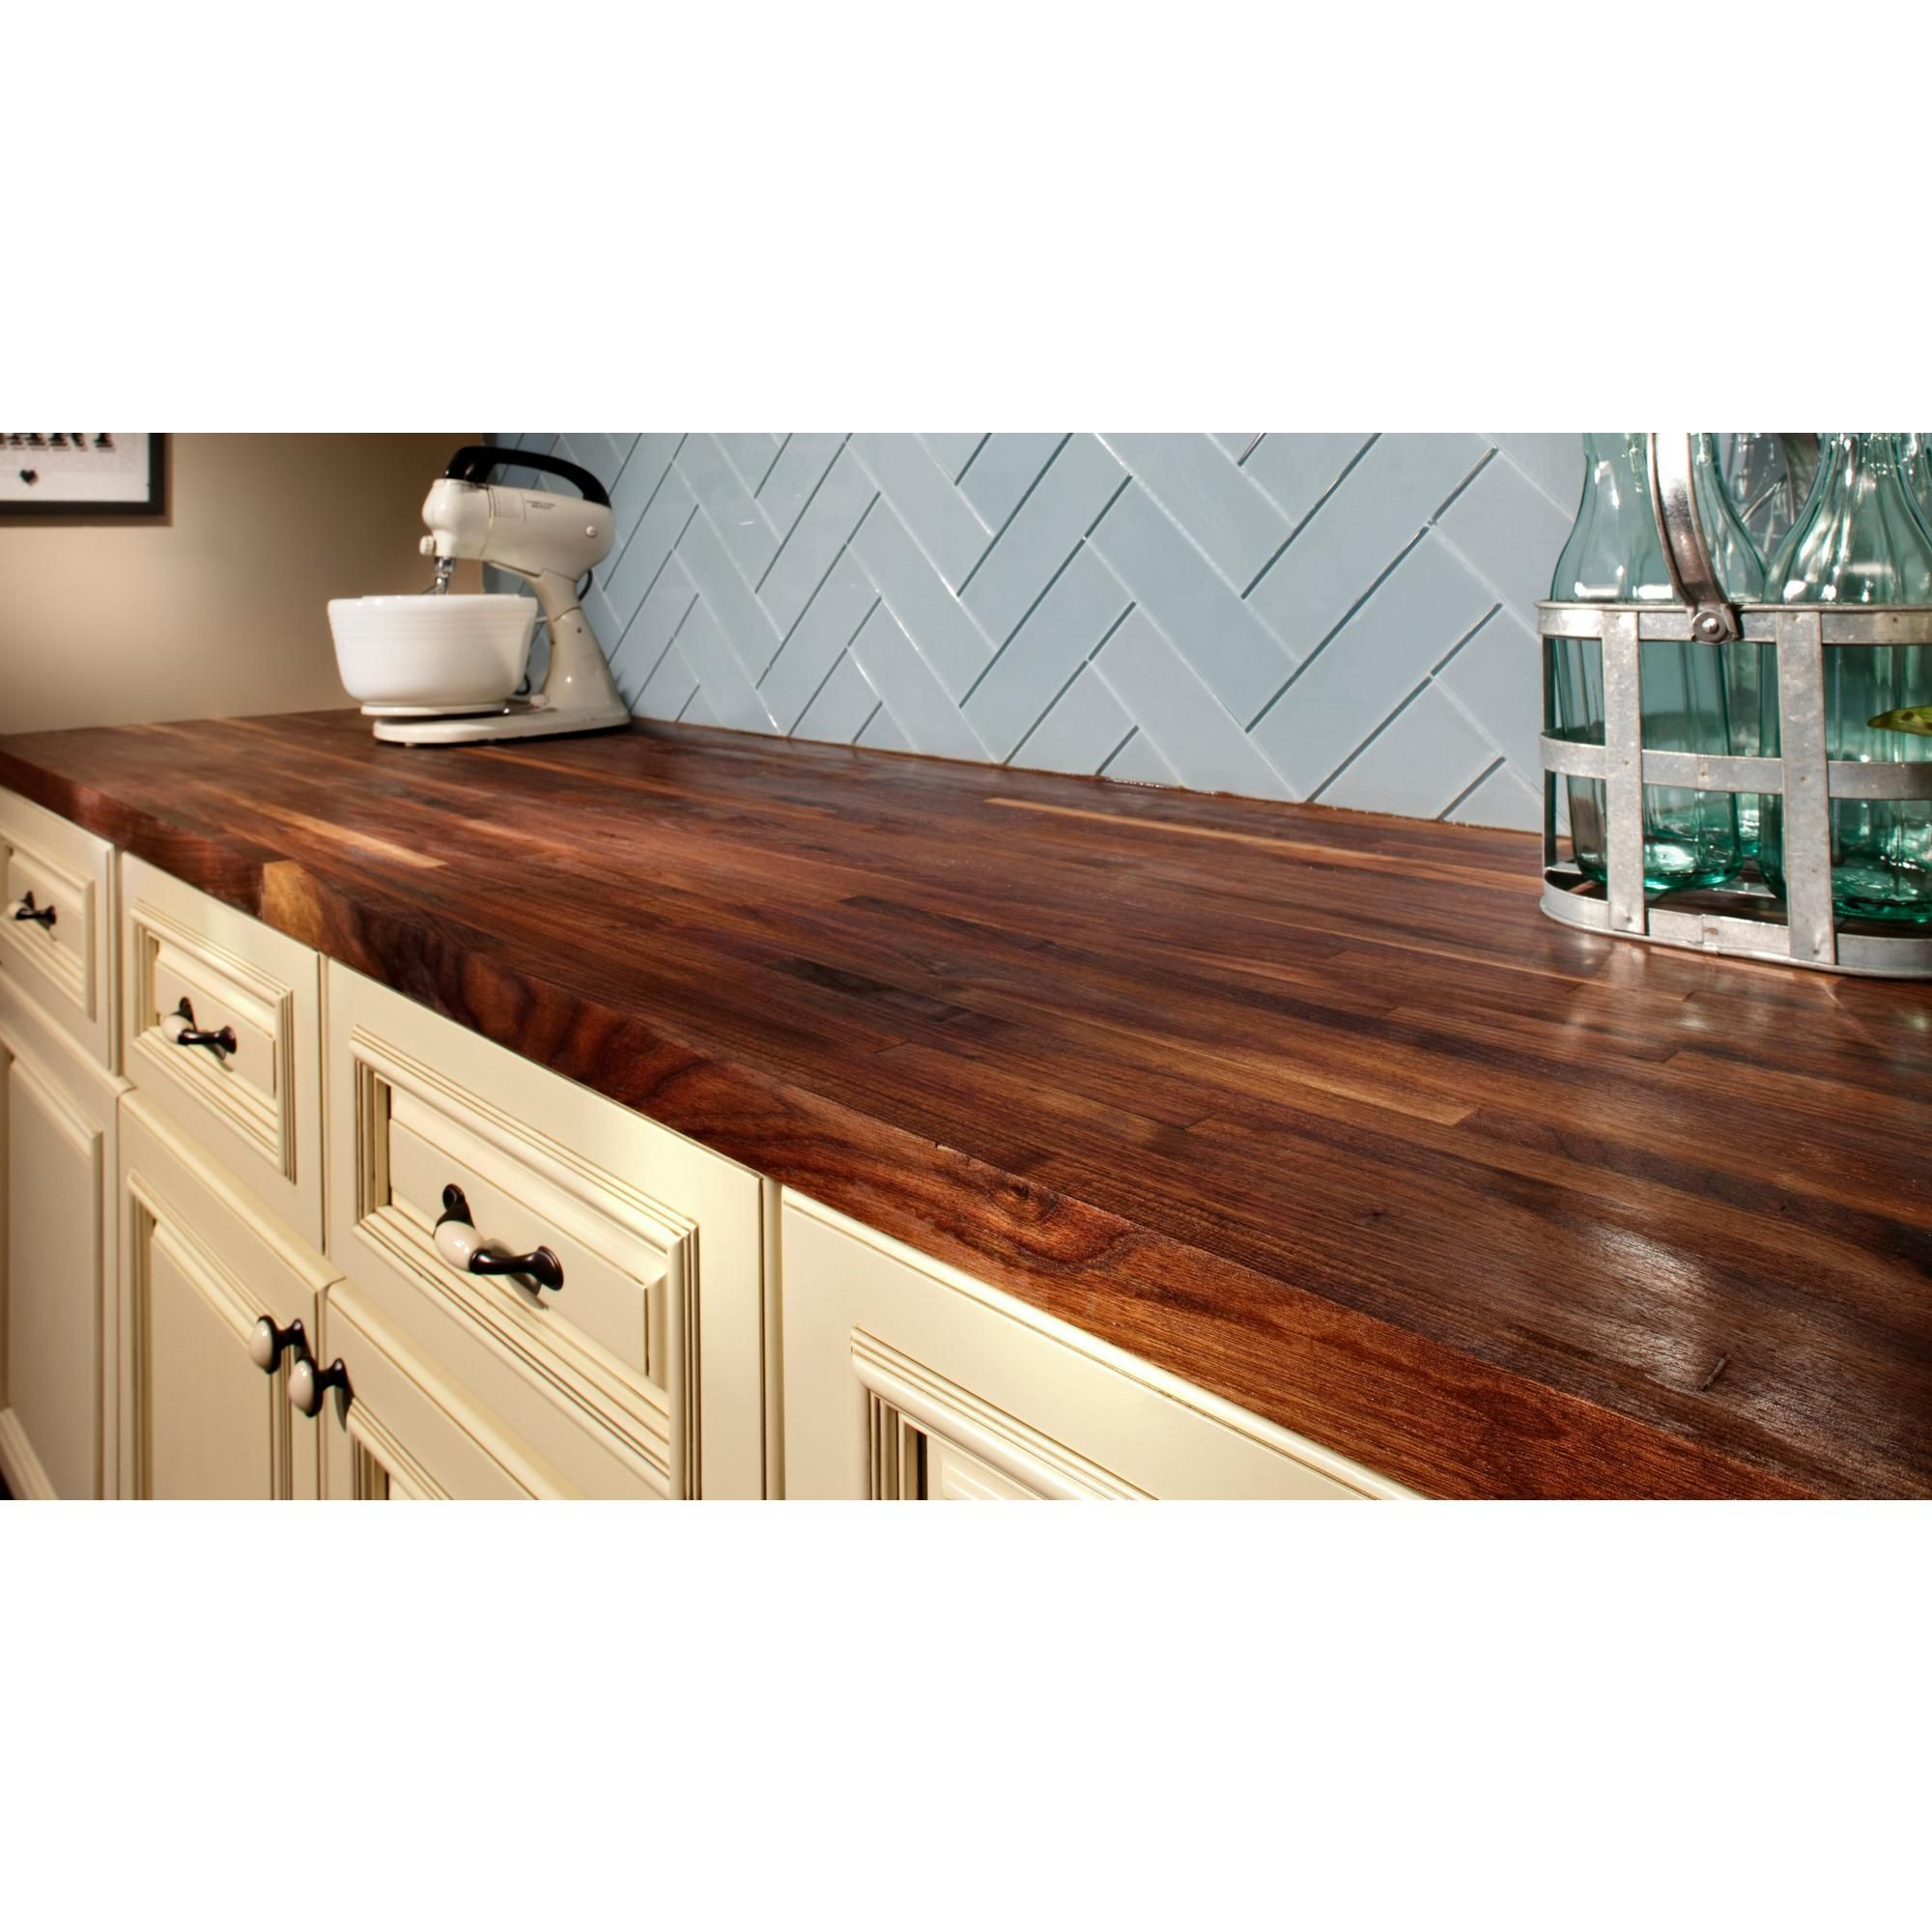 American Walnut Butcher Block Countertop 12ft Floor Decor Butcher Block Countertops Walnut Butcher Block Outdoor Kitchen Countertops